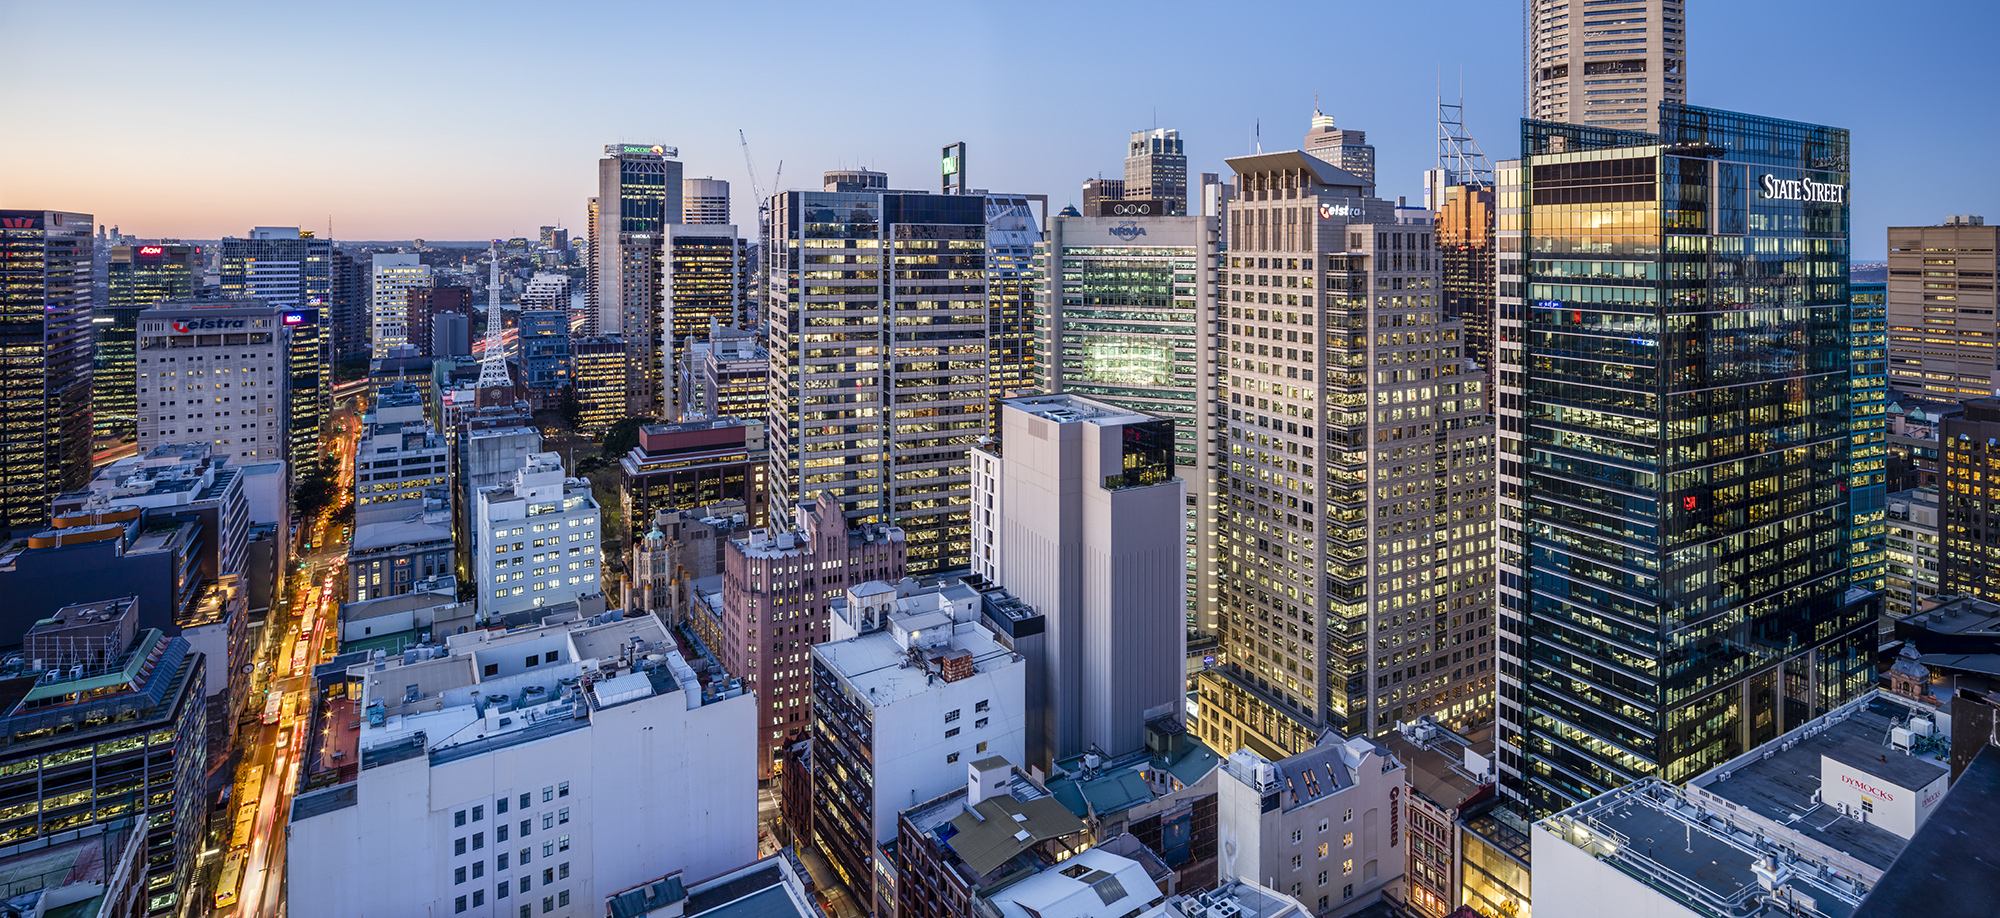 400 GEORGE ST FOR M&G REAL ESTATE